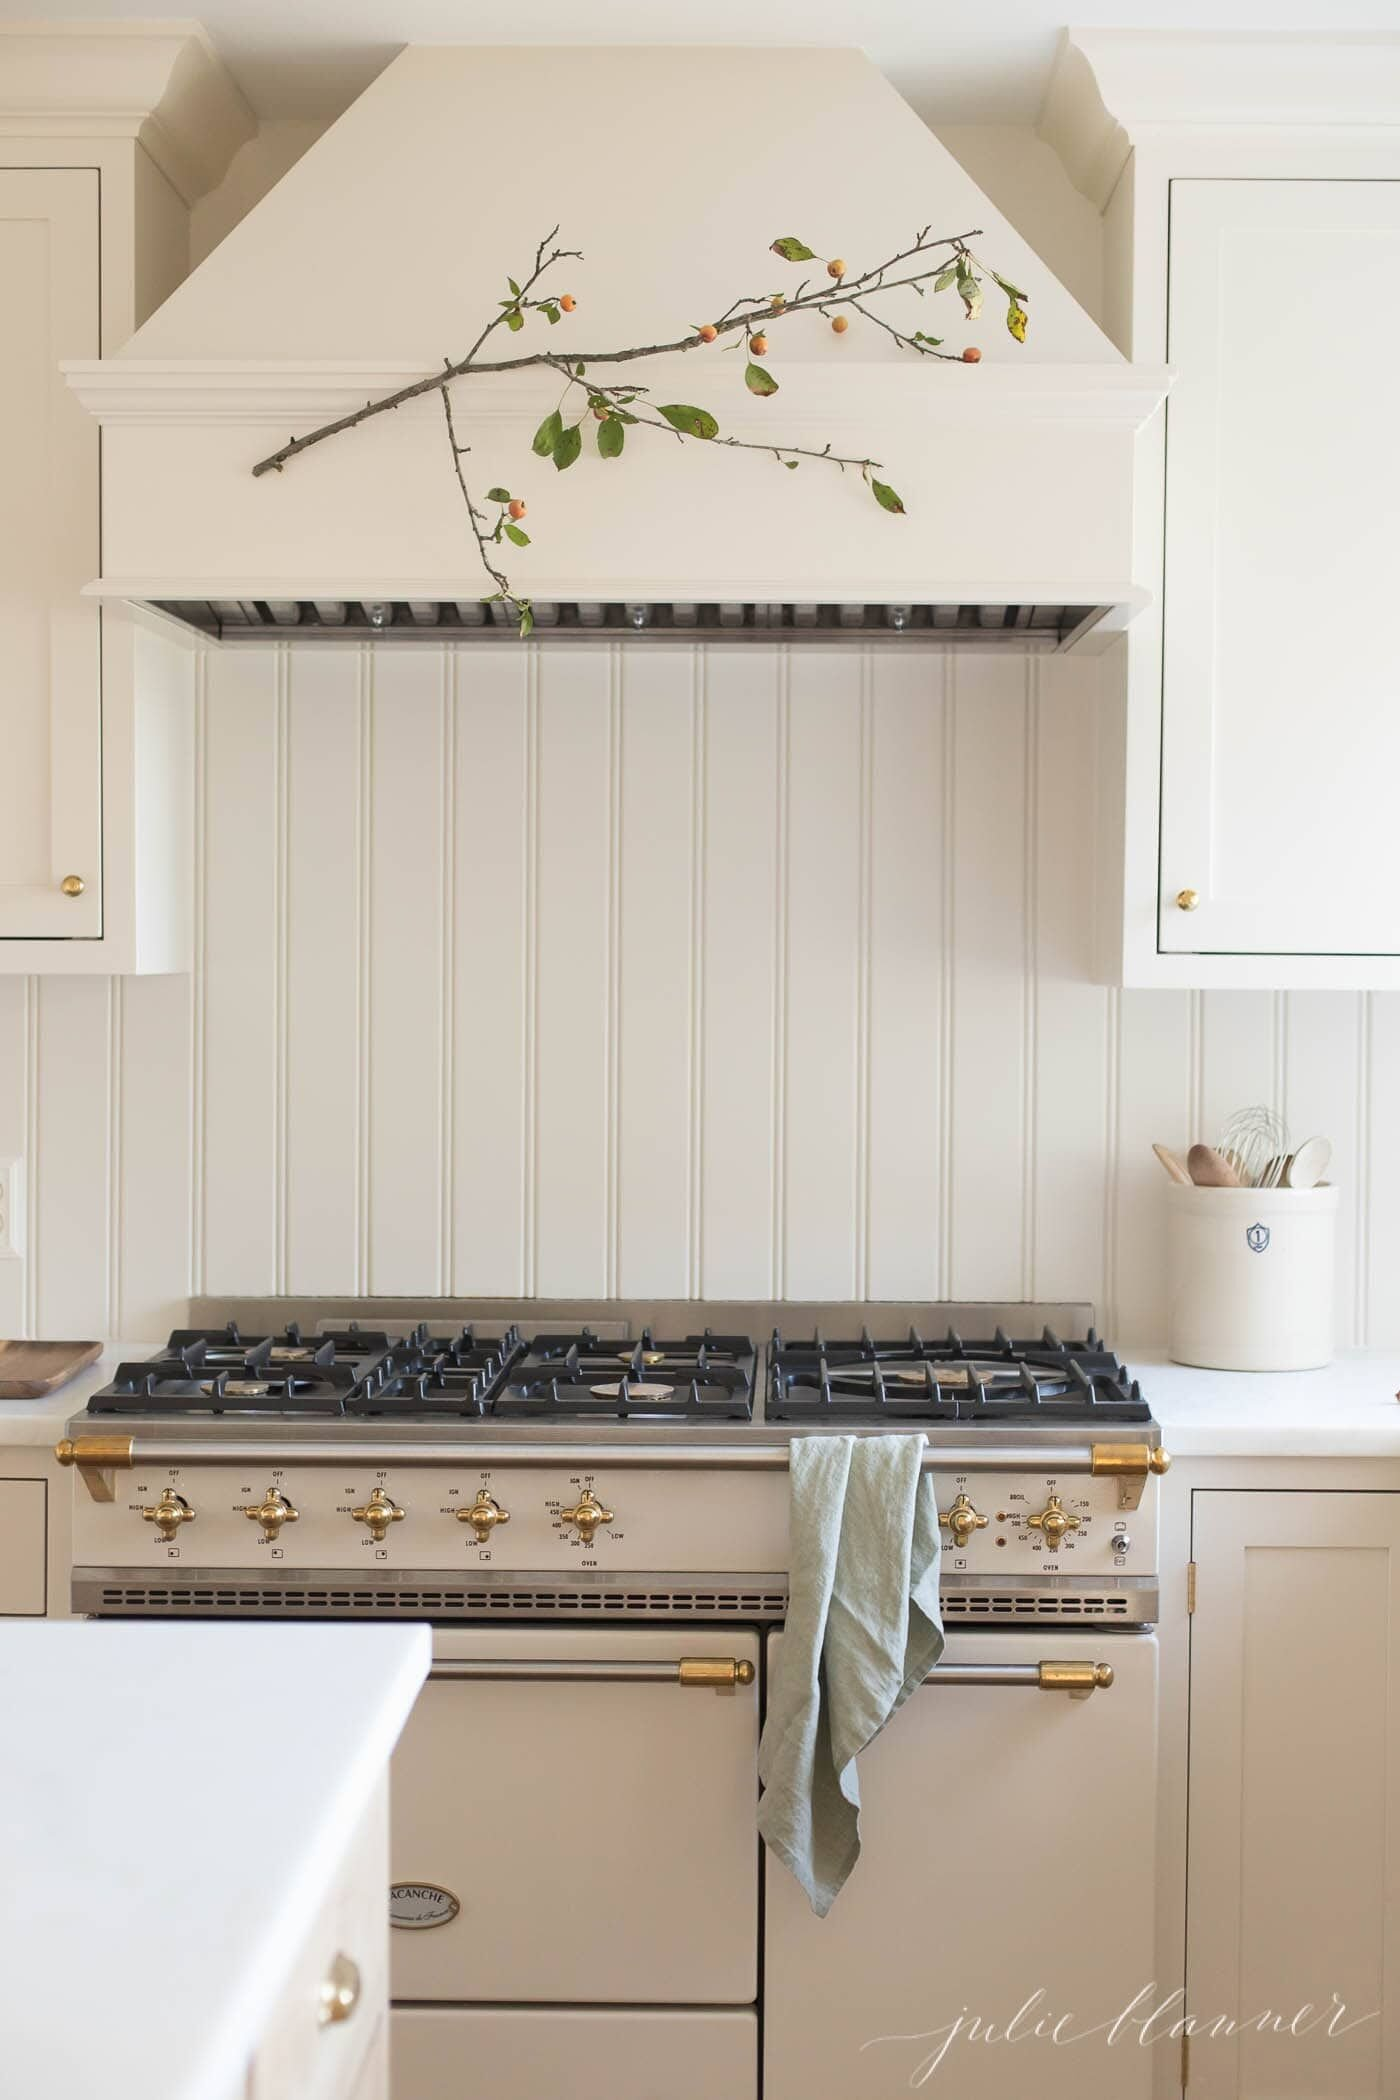 White kitchen cabinets with a fall branch on the range hood.